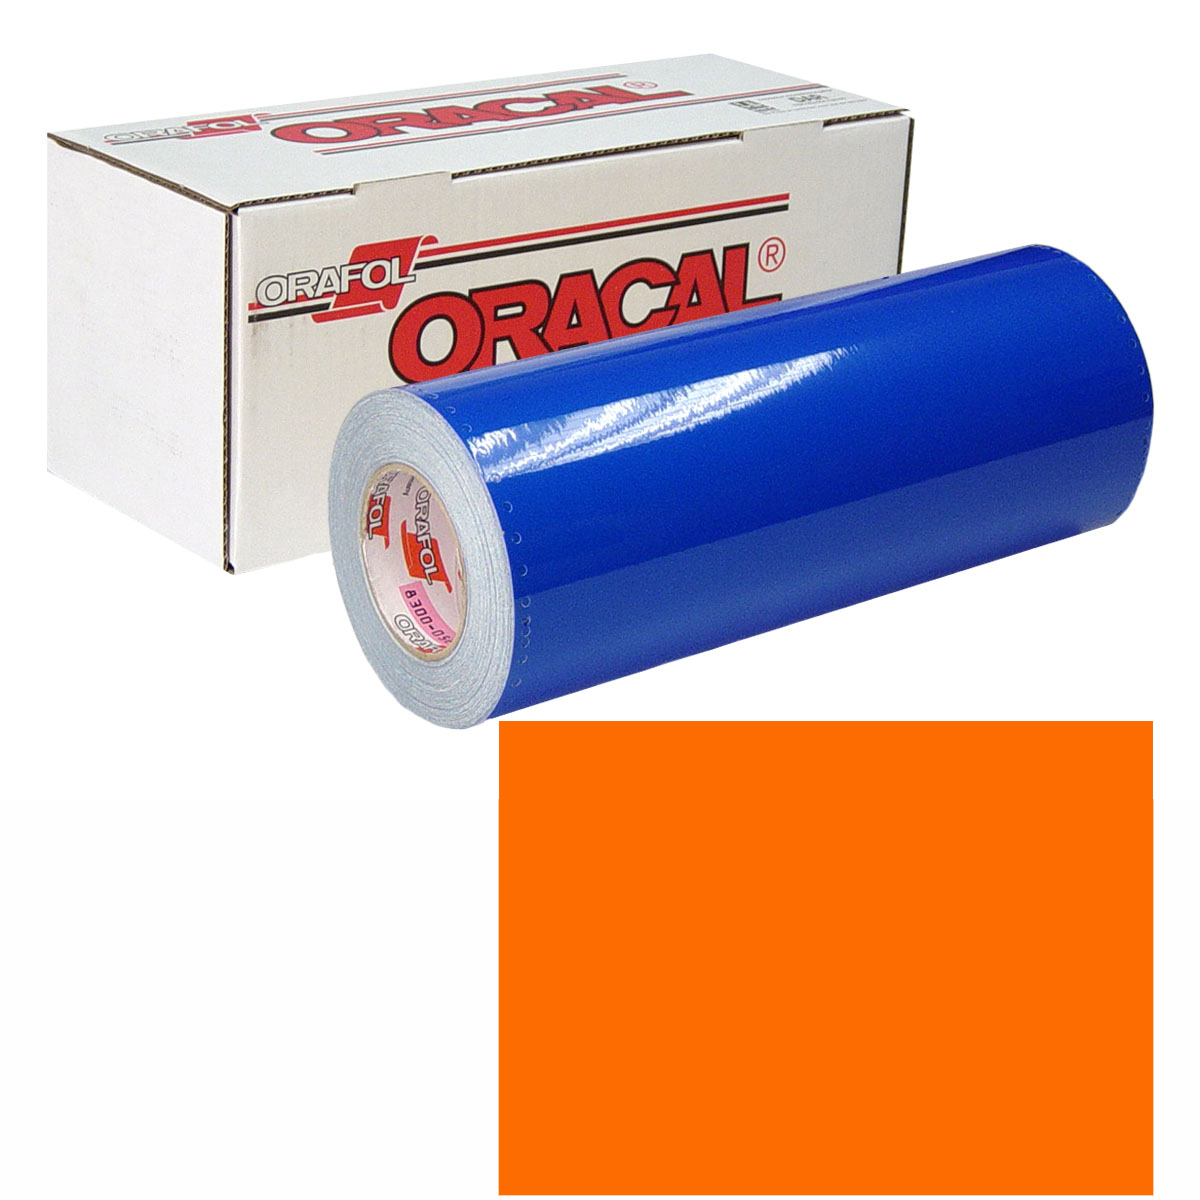 ORACAL 631 15in X 50yd 035 Pastel Orange